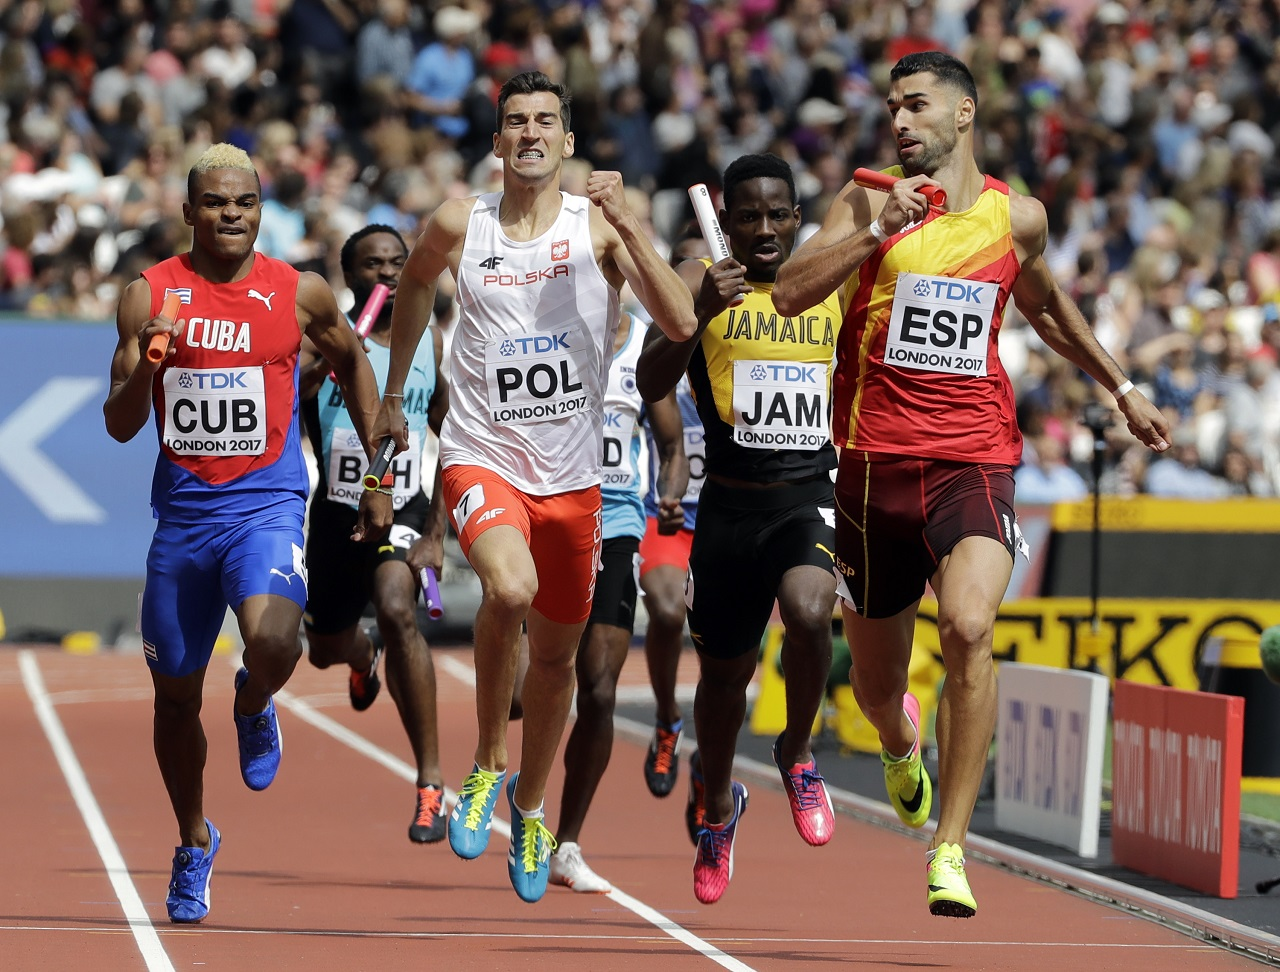 Jamaica's anchor leg runner Rusheen McDonald (yellow jersey) tries to get on terms as Spain's Samuel Garcia, right, anchors his team to win a Men's 4x400m relay heat.